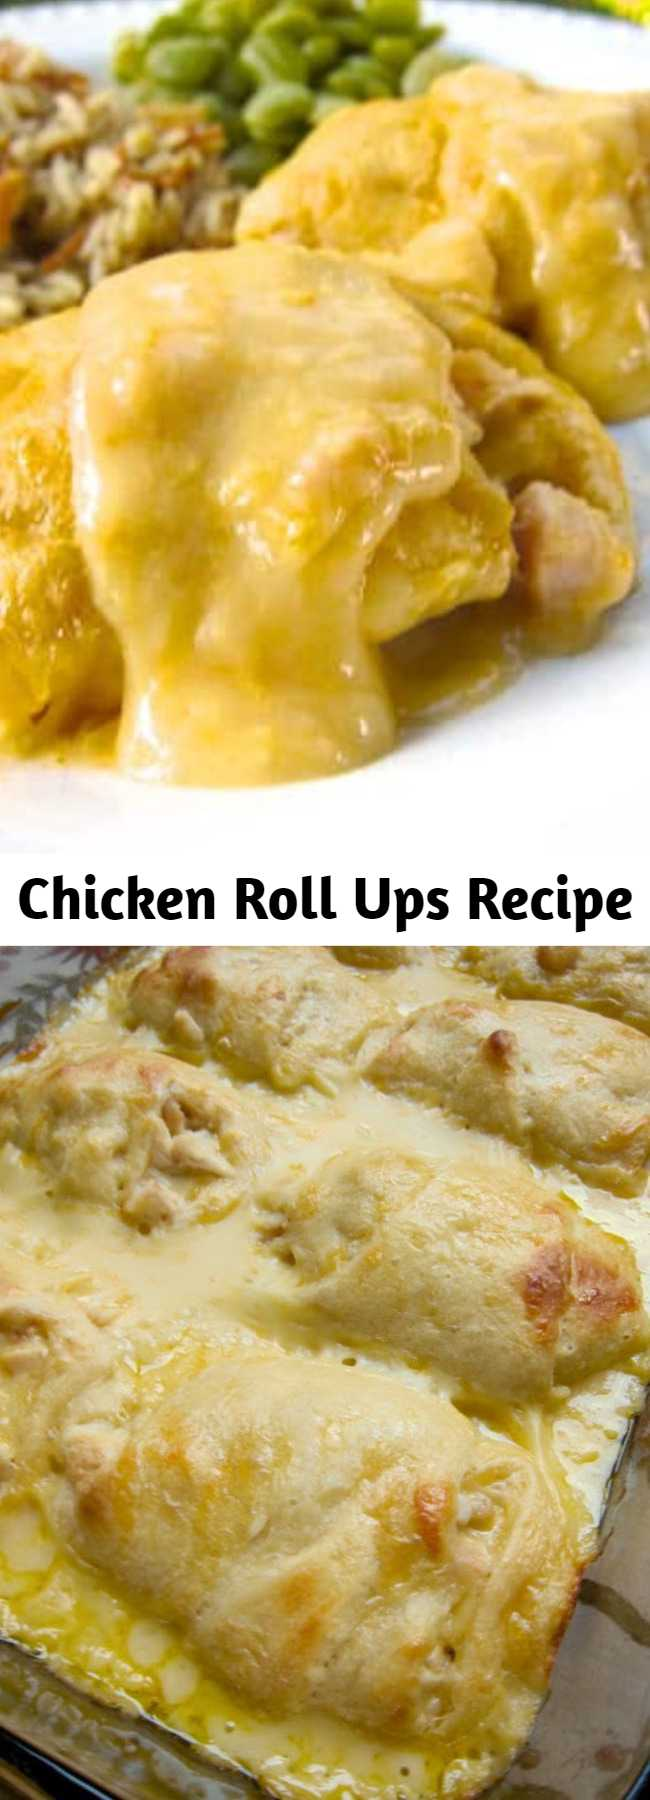 Chicken Roll Ups Recipe - Heaven in a pan... Chicken, cheese, milk, chicken soup and crescent rolls – Only 5 ingredients for a delicious weeknight meal that is ready in 30 minutes! I could eat the whole pan myself!!